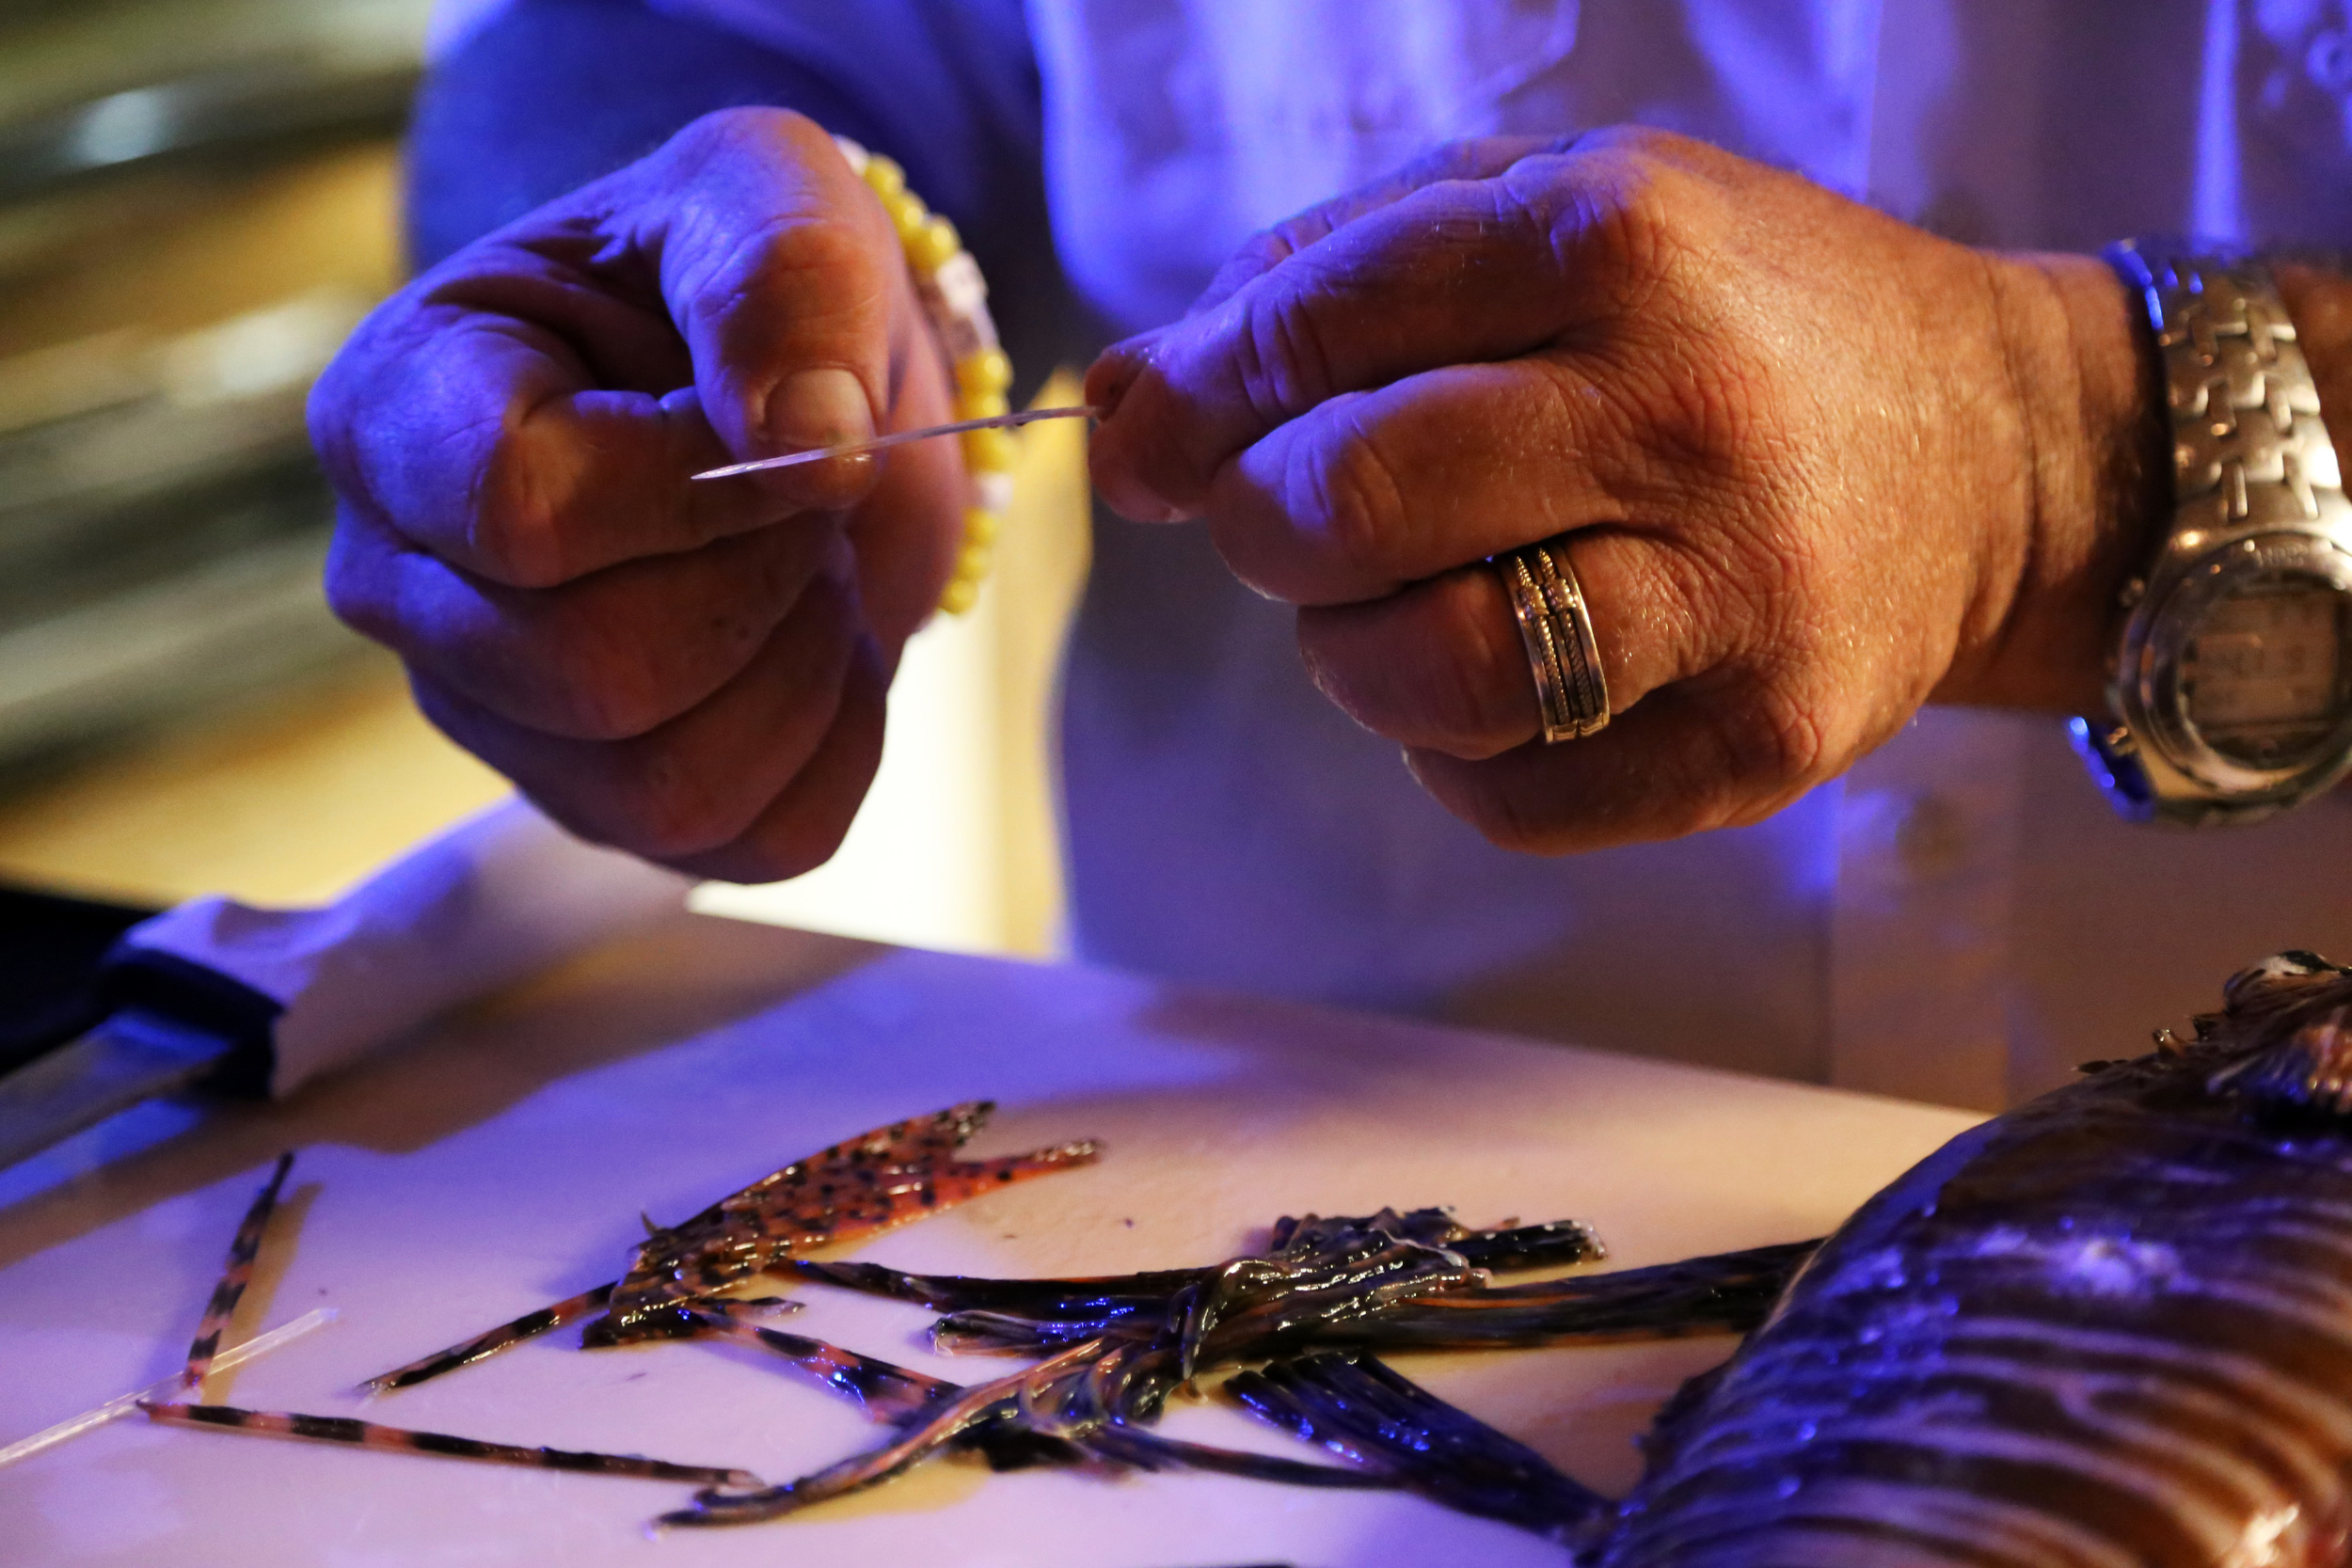 John Mirabella of Castaways in Marathon Key removes spines from a lionfish in preparation for lionfish sushi.